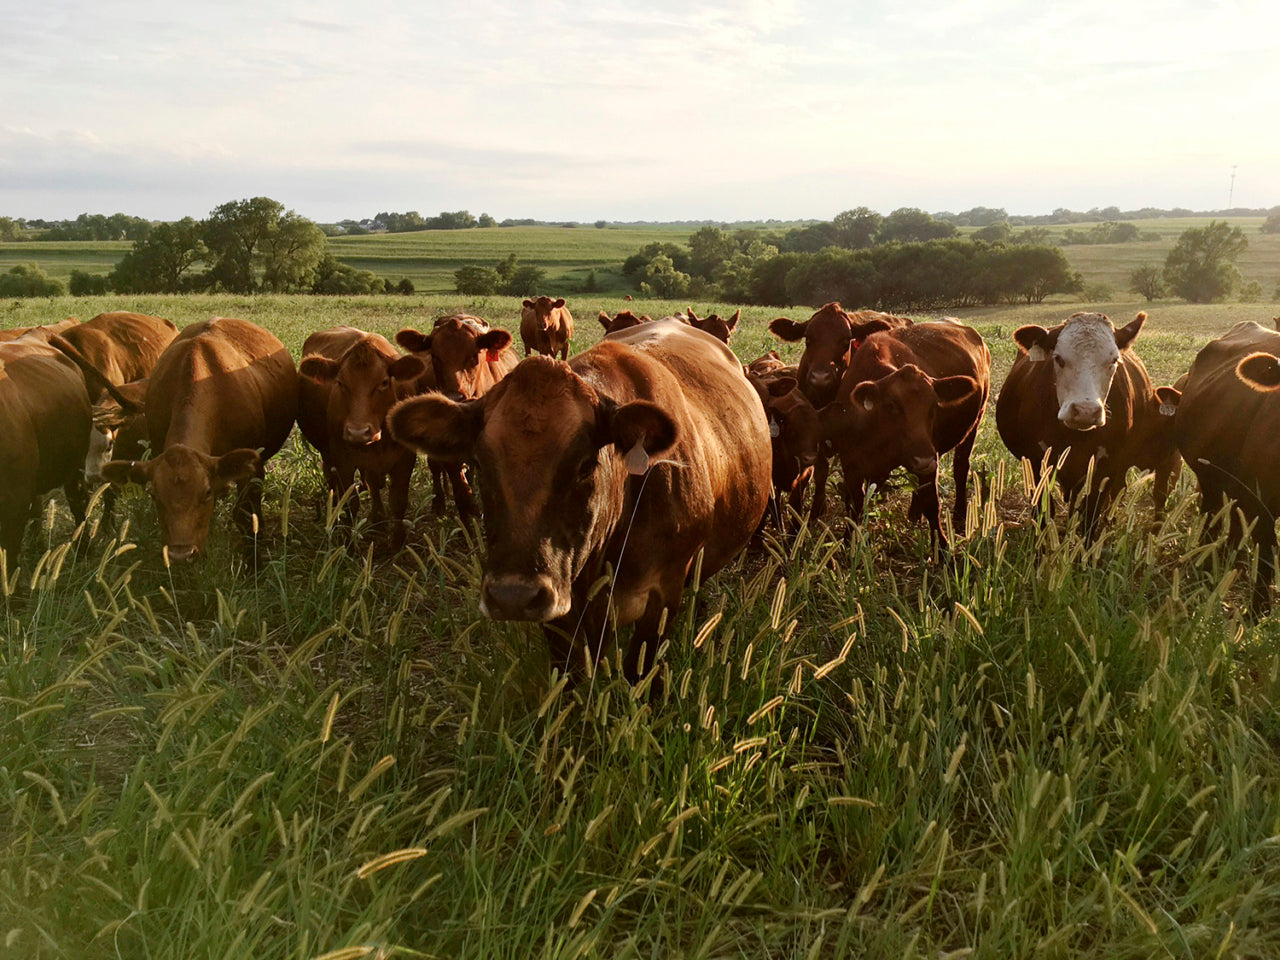 Ficke's cattle free-range graze on grass and bales of hay, which are returned to the soil in the form of cow manure and urine. Photo: courtesy Del Ficke